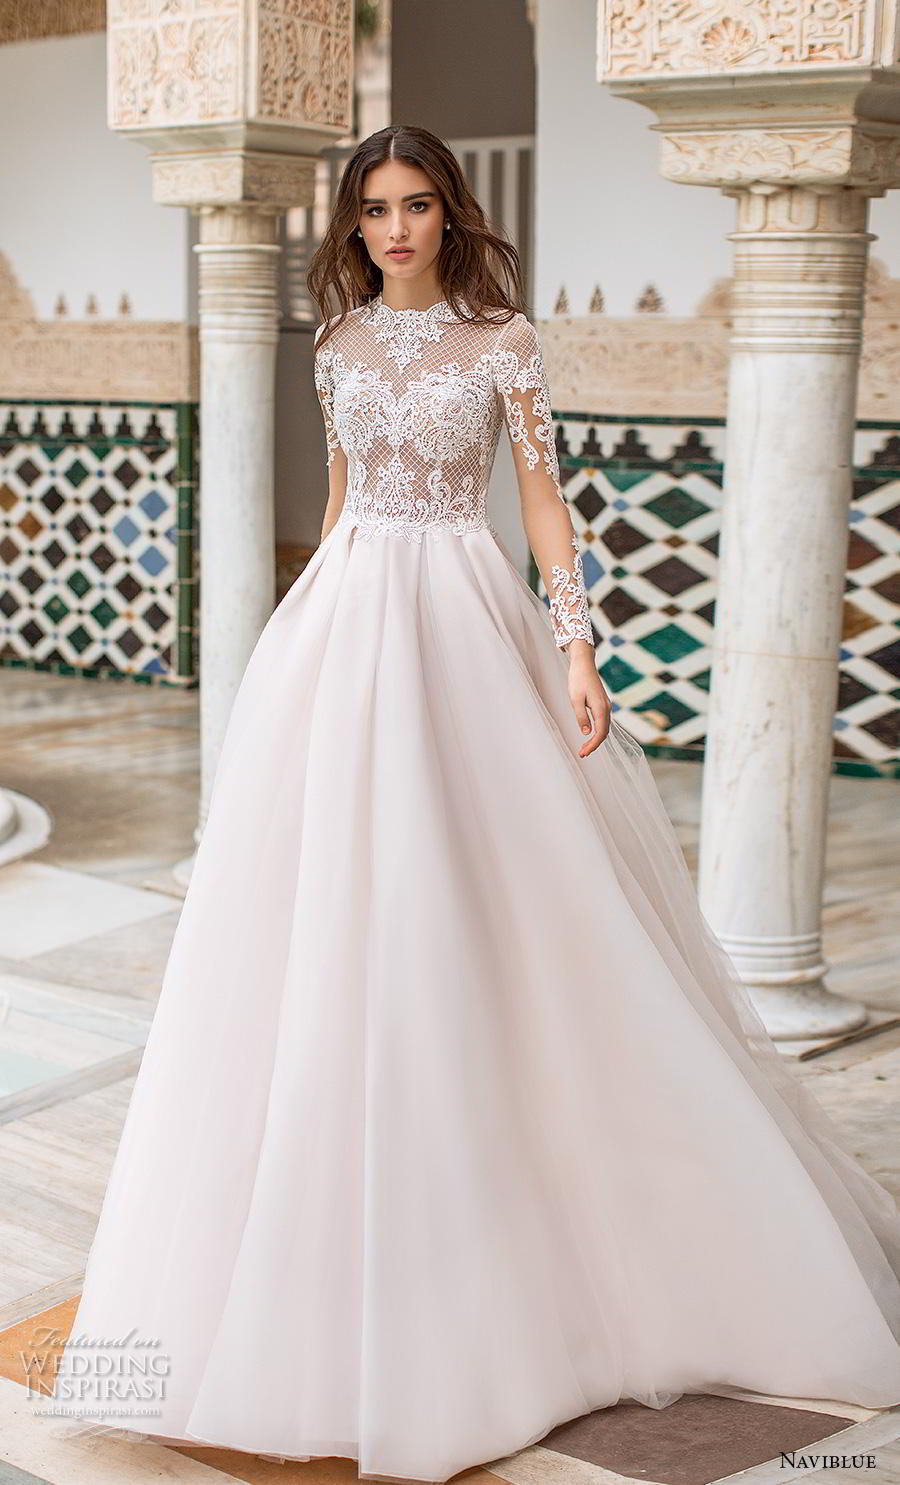 Naviblue 2019 Wedding Dresses Dolly Bridal Collection